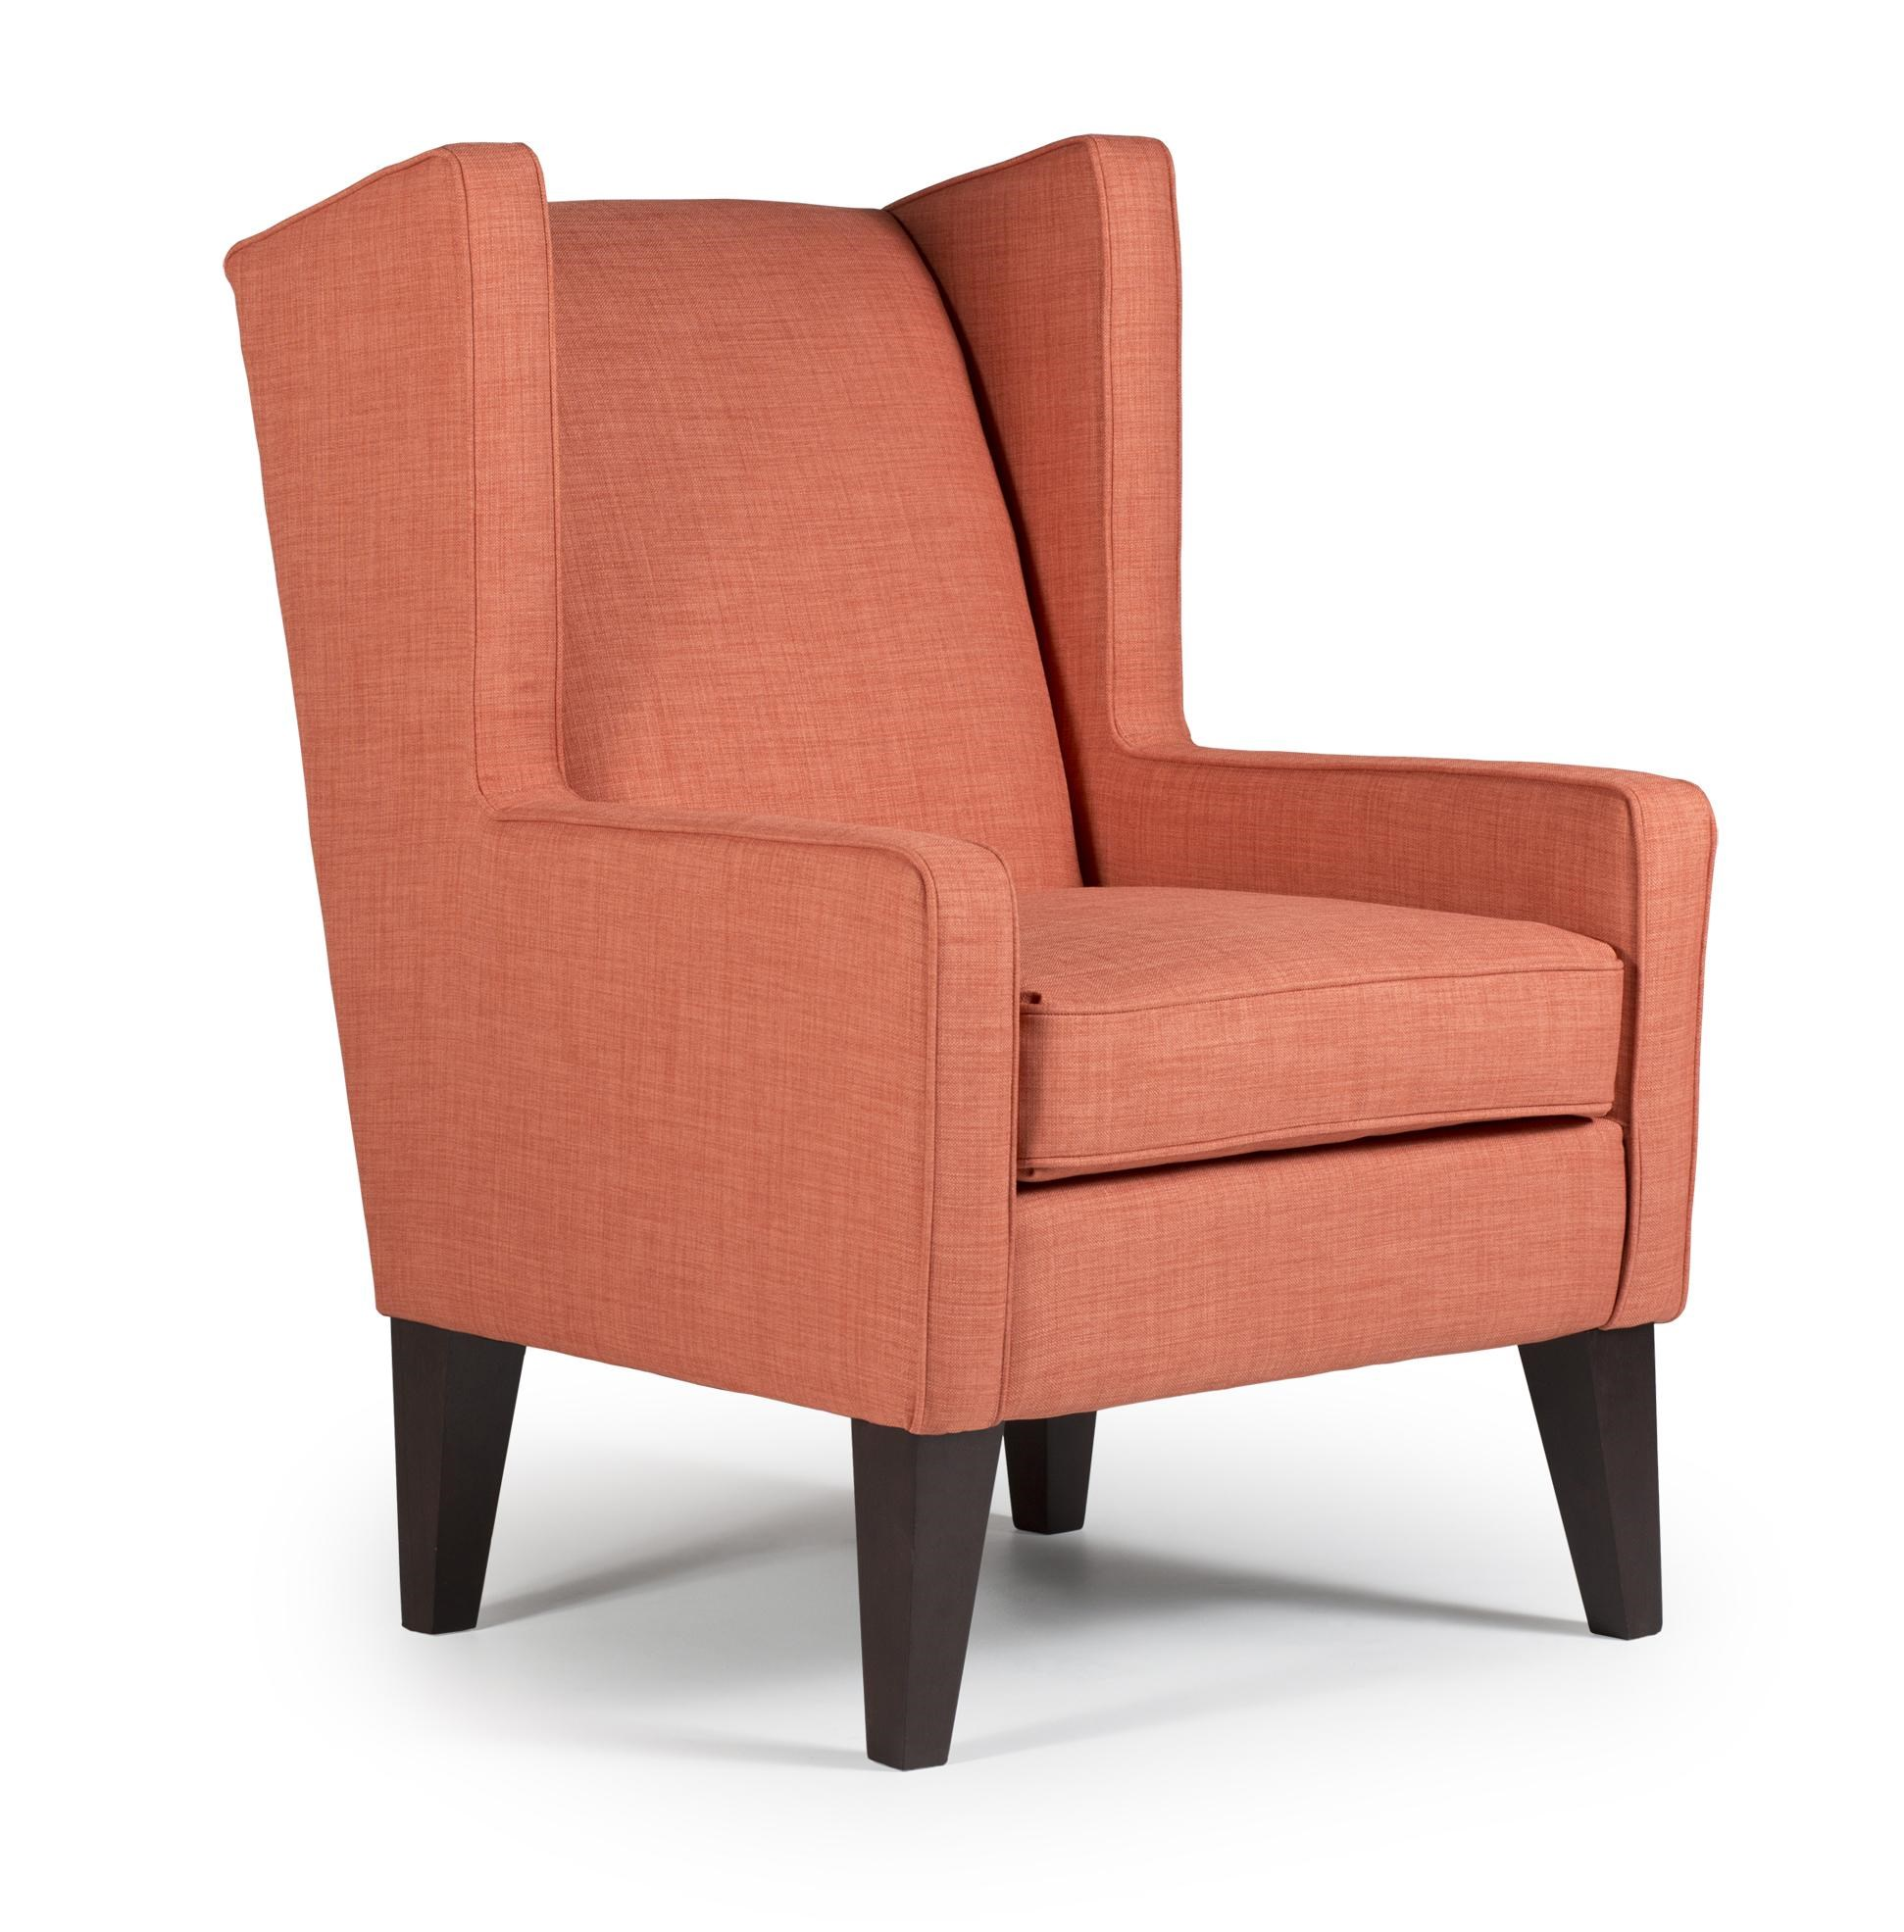 modern wing chairs. Best Home Furnishings Chairs - Wing BackWing Chair Modern D